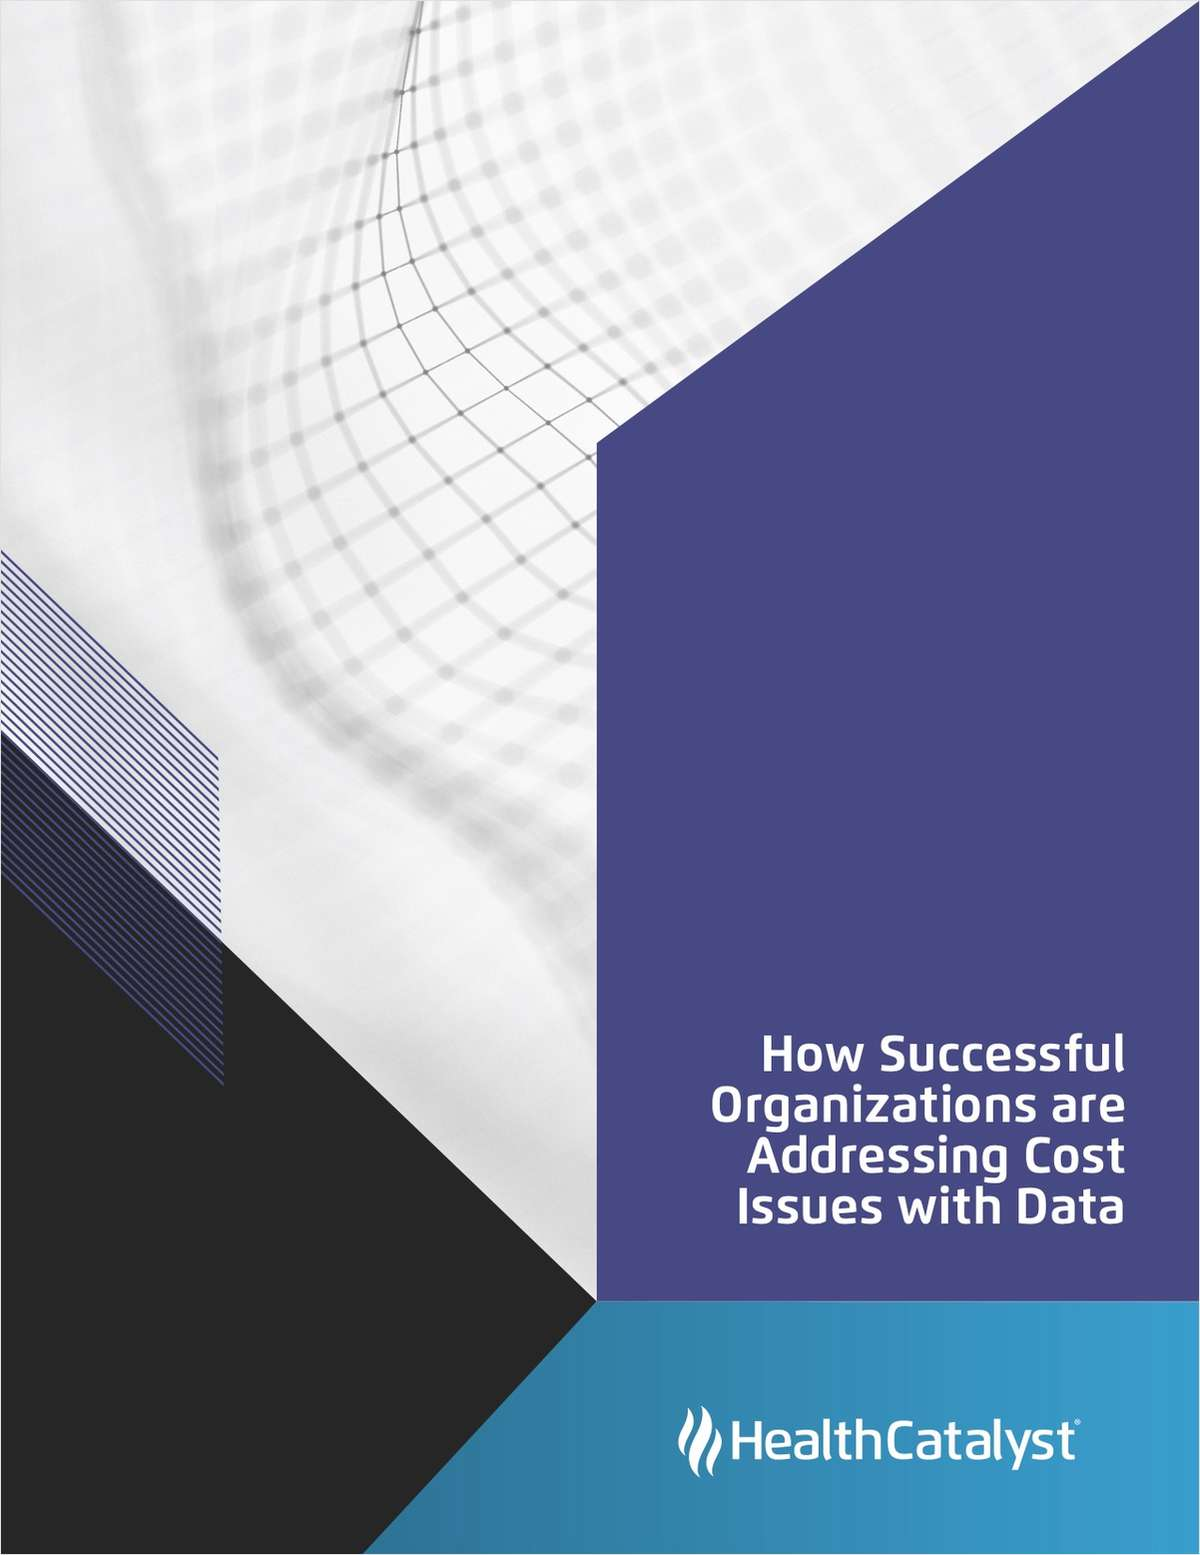 How Successful Organizations are Addressing Cost Issues with Data